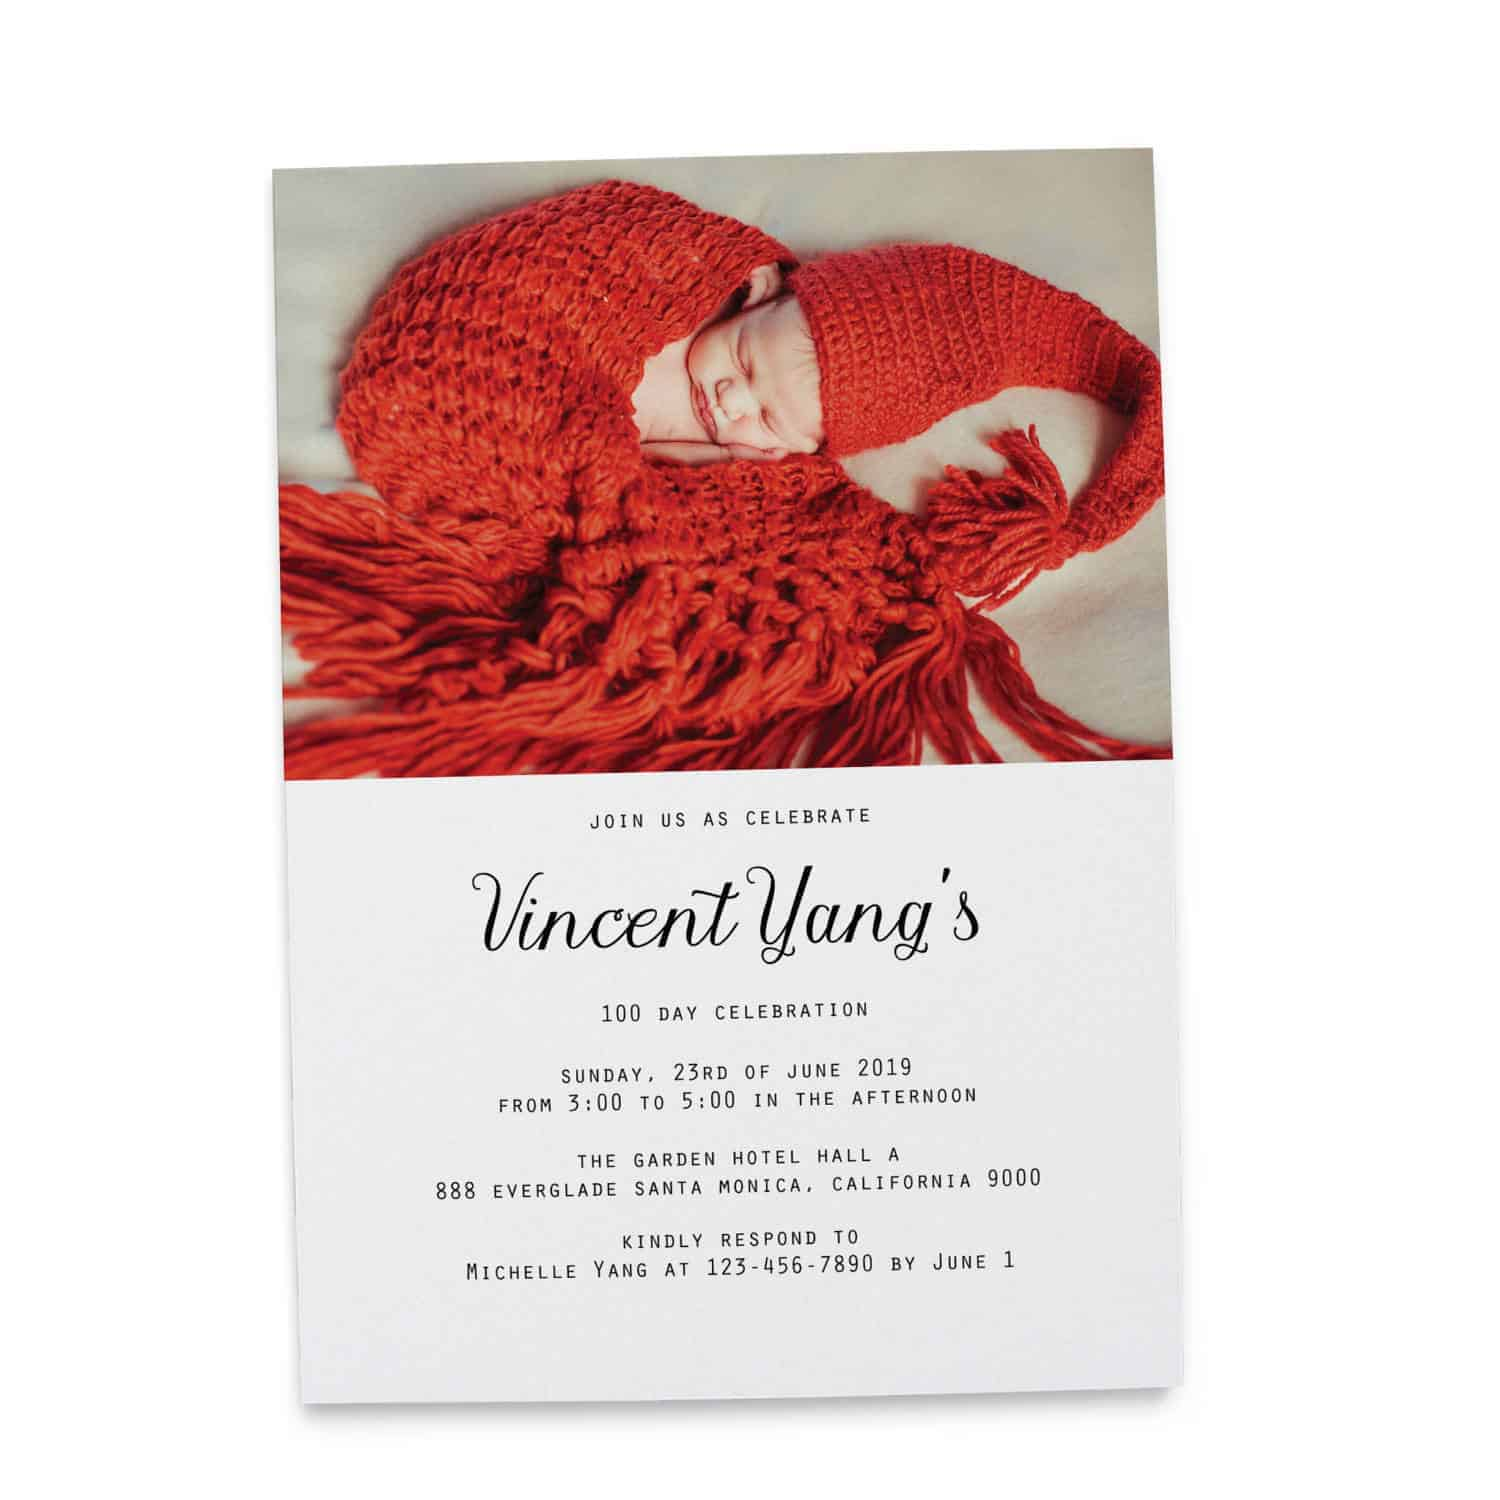 100 Day Party Cards, Red Egg and Ginger Invitation Cards, Add Your Own Photo